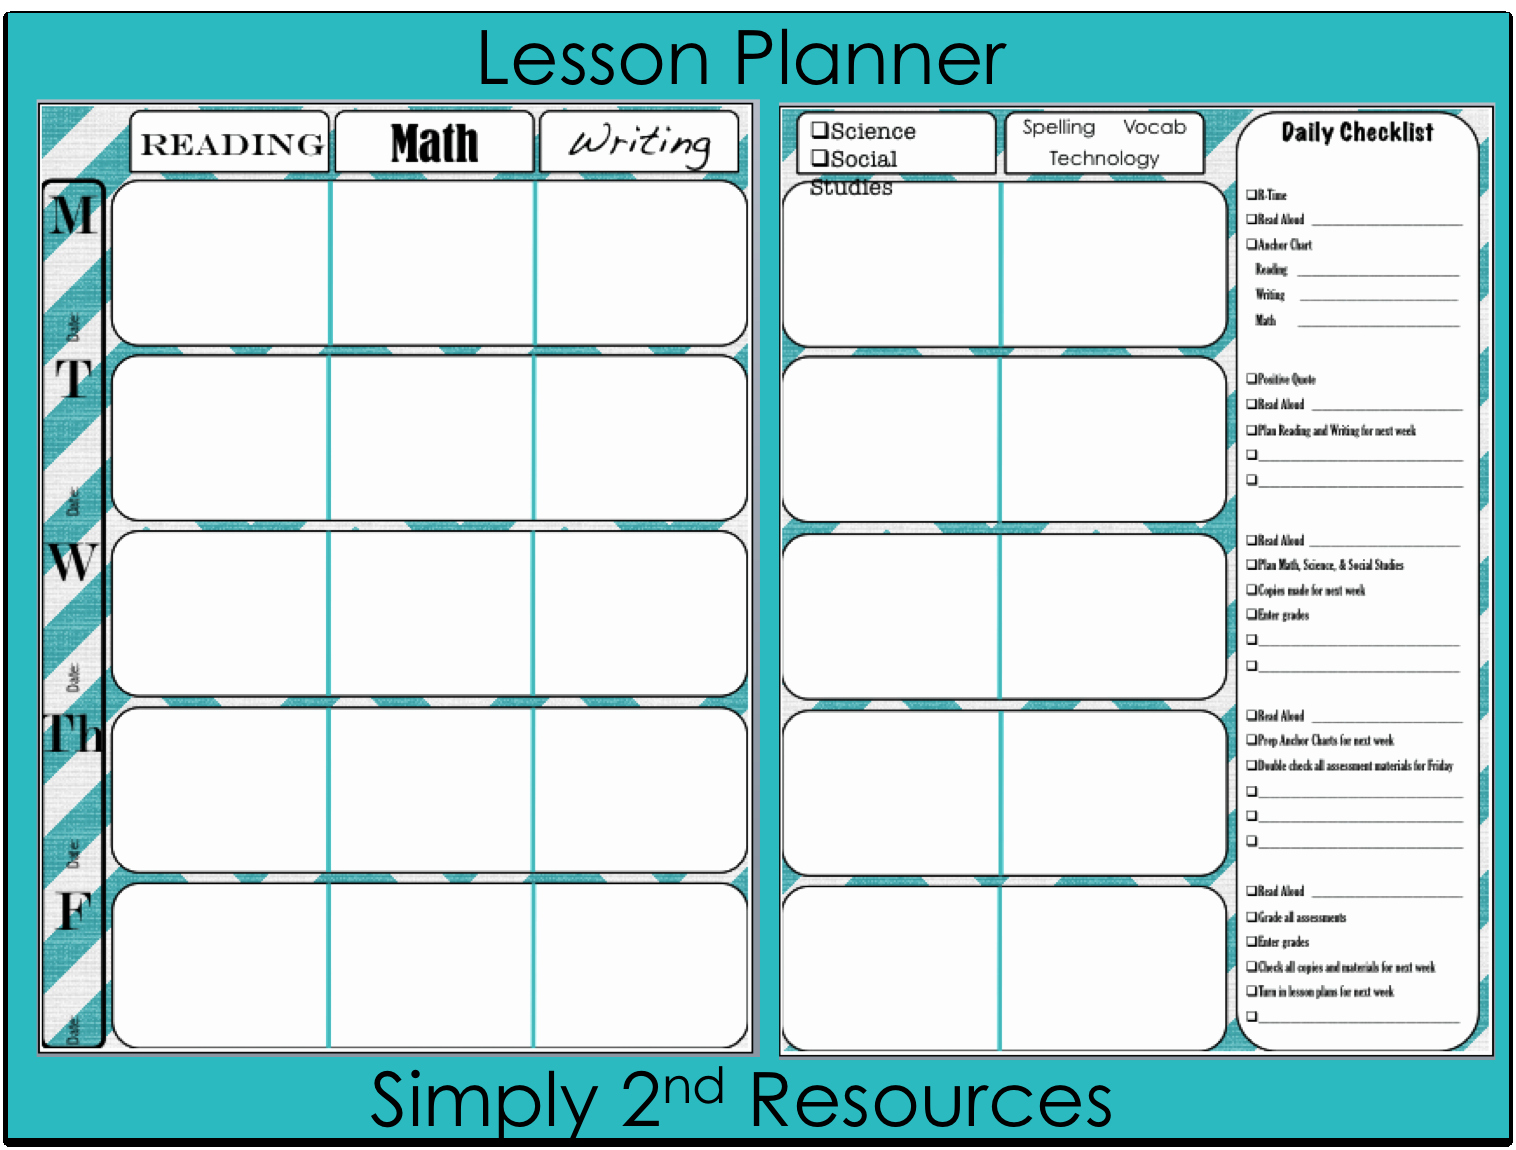 Weekly Planner Template for Teachers Unique Daily Teacher Planner Template 13 Heegan Times